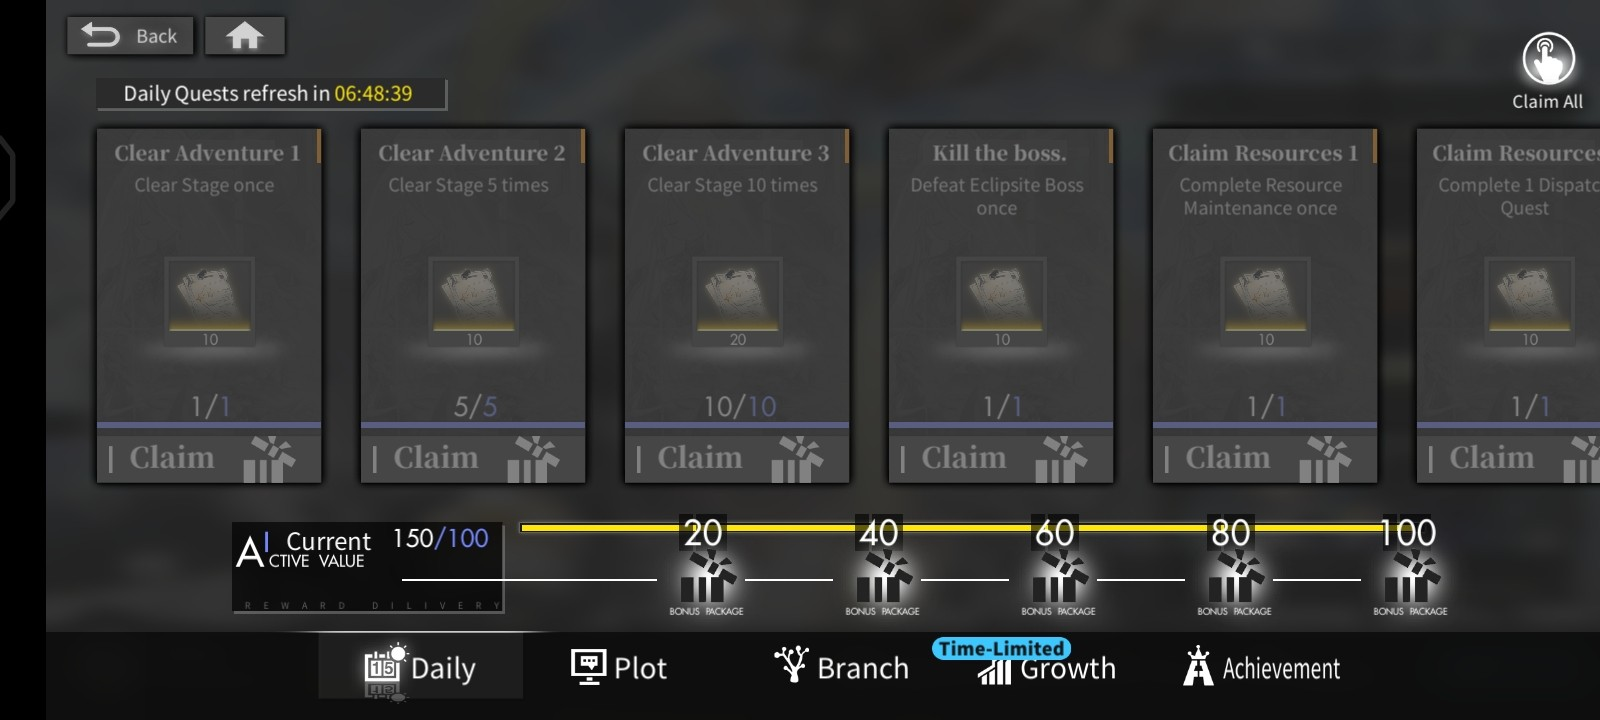 Alchemy Stars Daily Quests